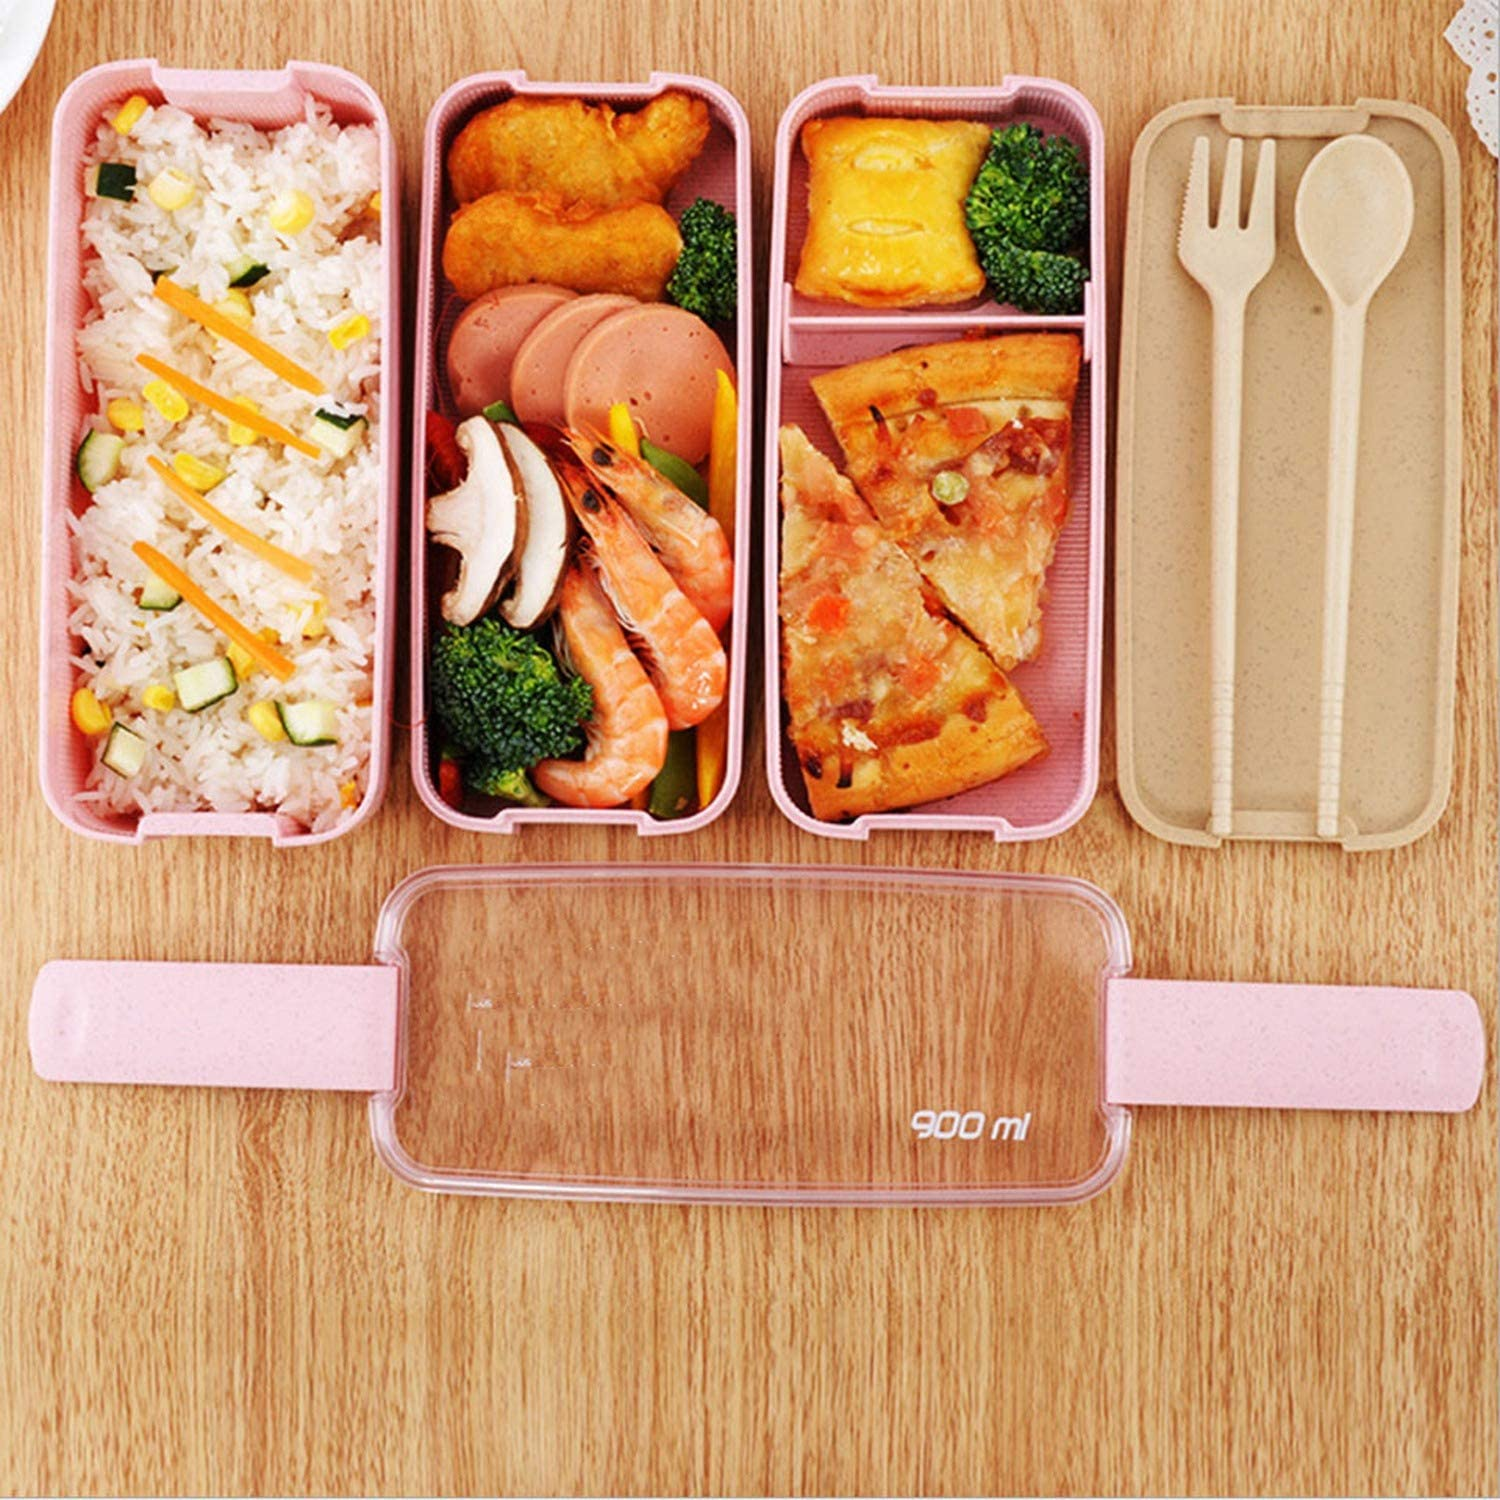 3 - Layered Microwavable Food container